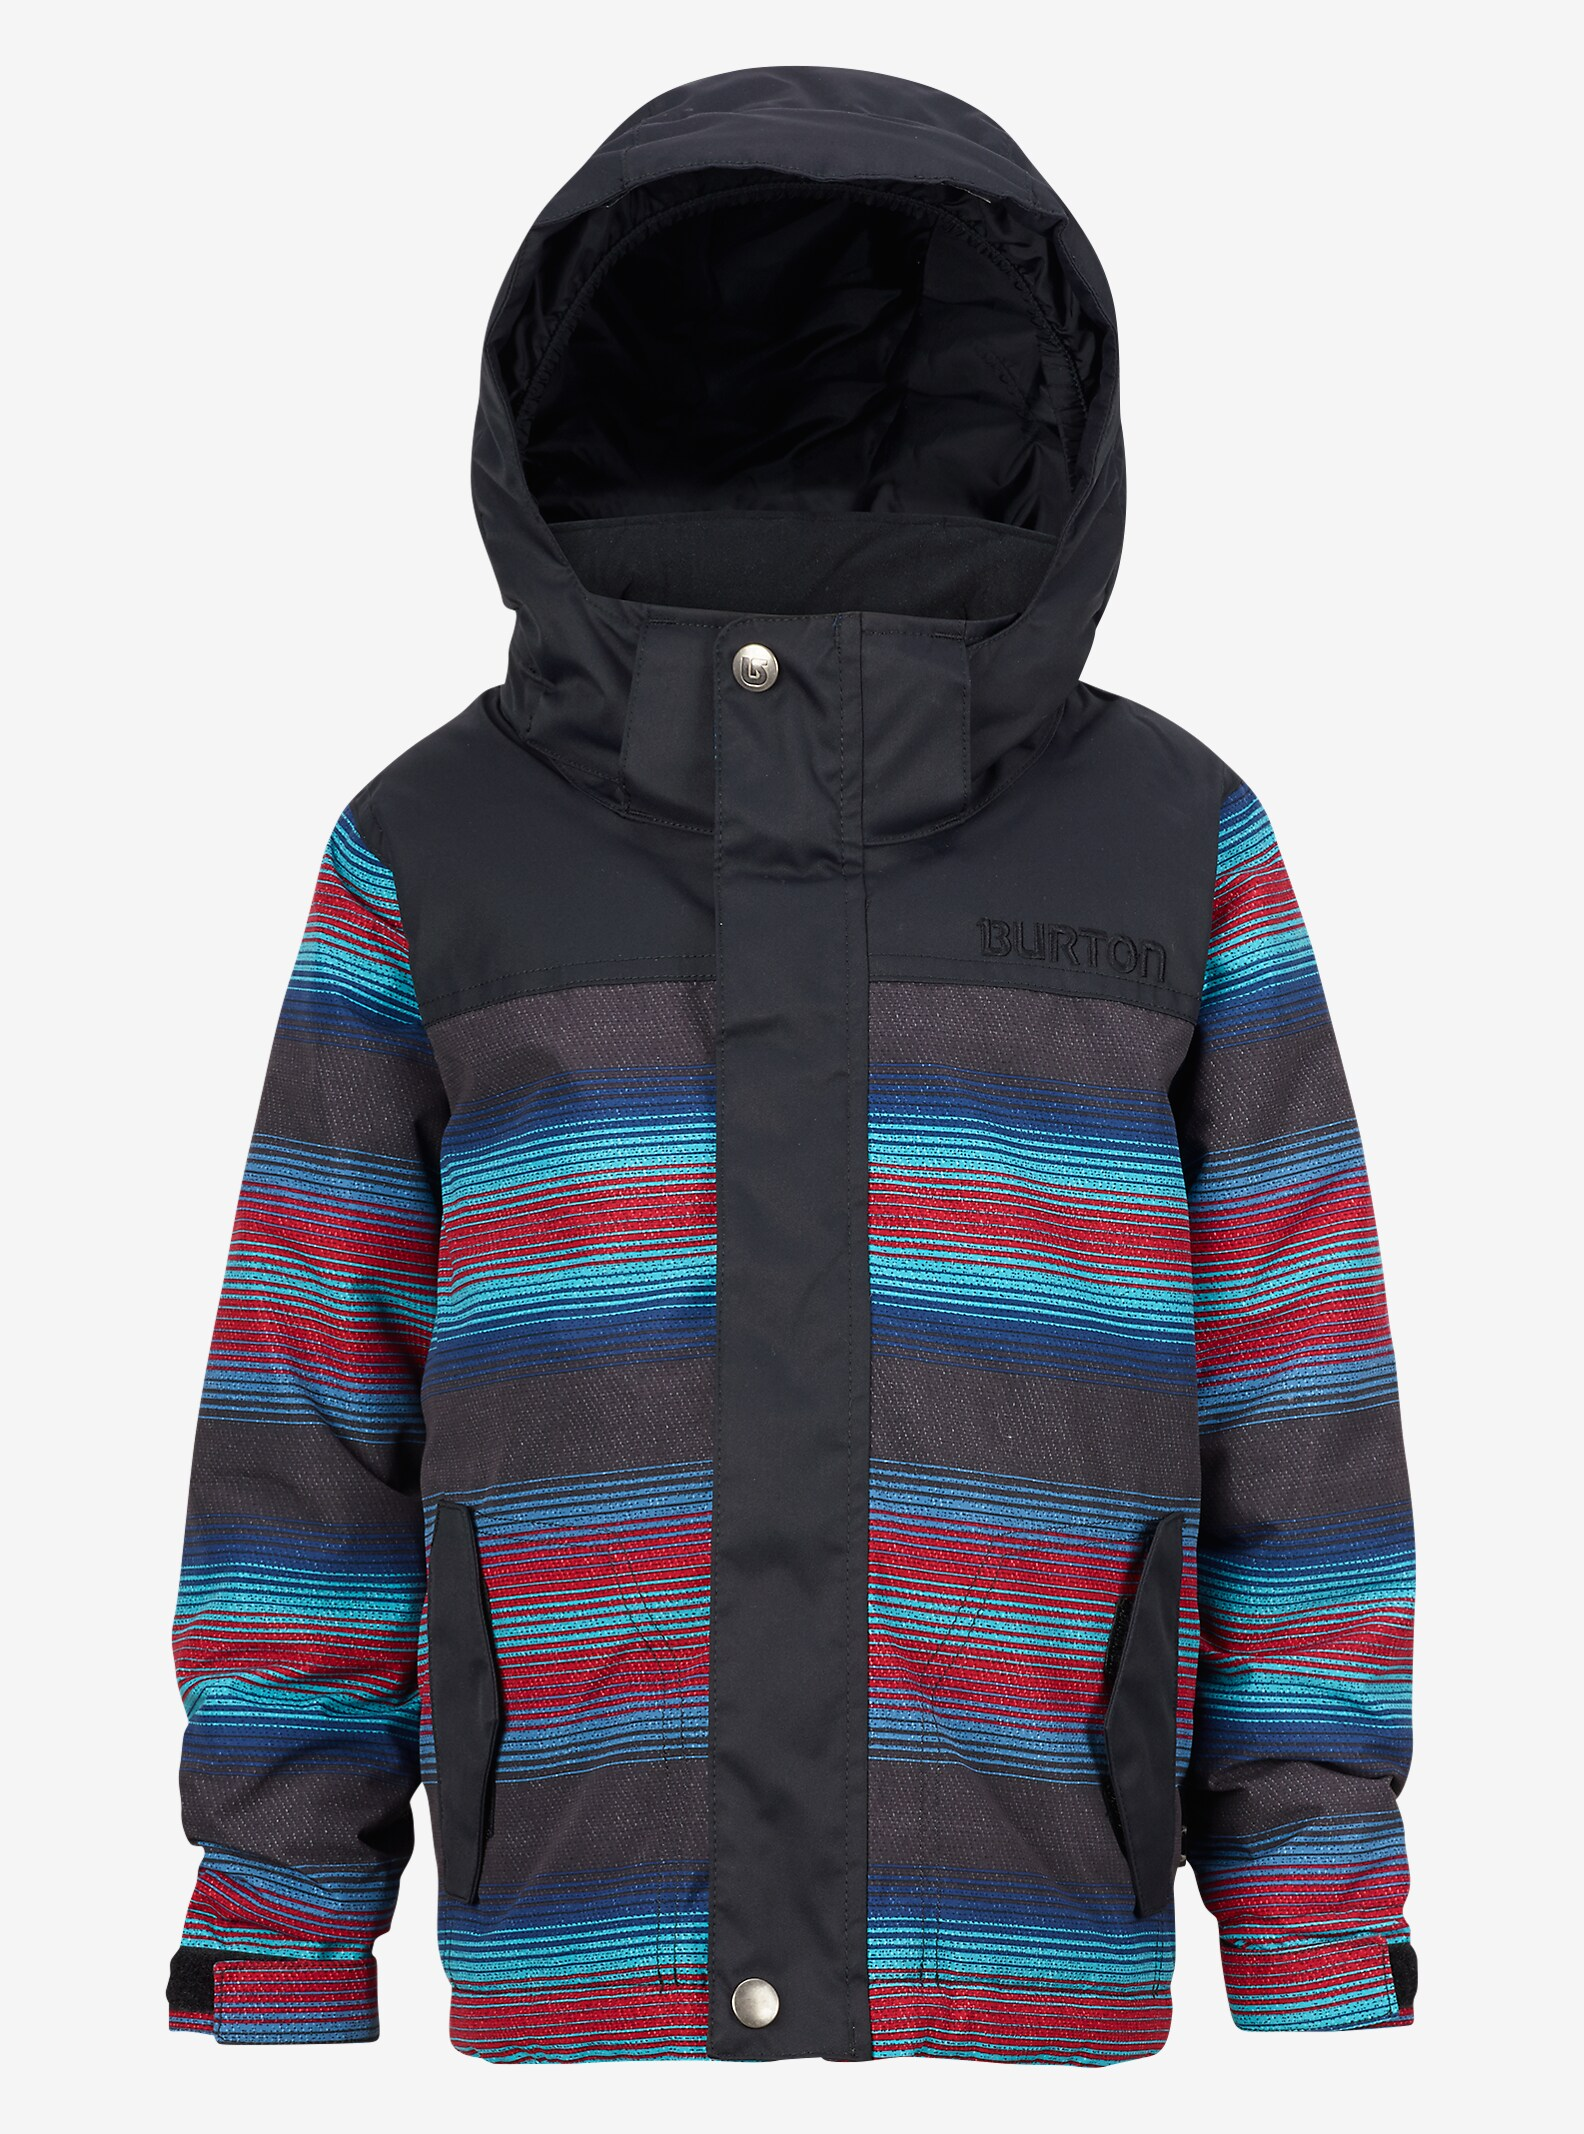 Burton Boys' Minishred Amped Jacket shown in Seaside Stripe / True Black